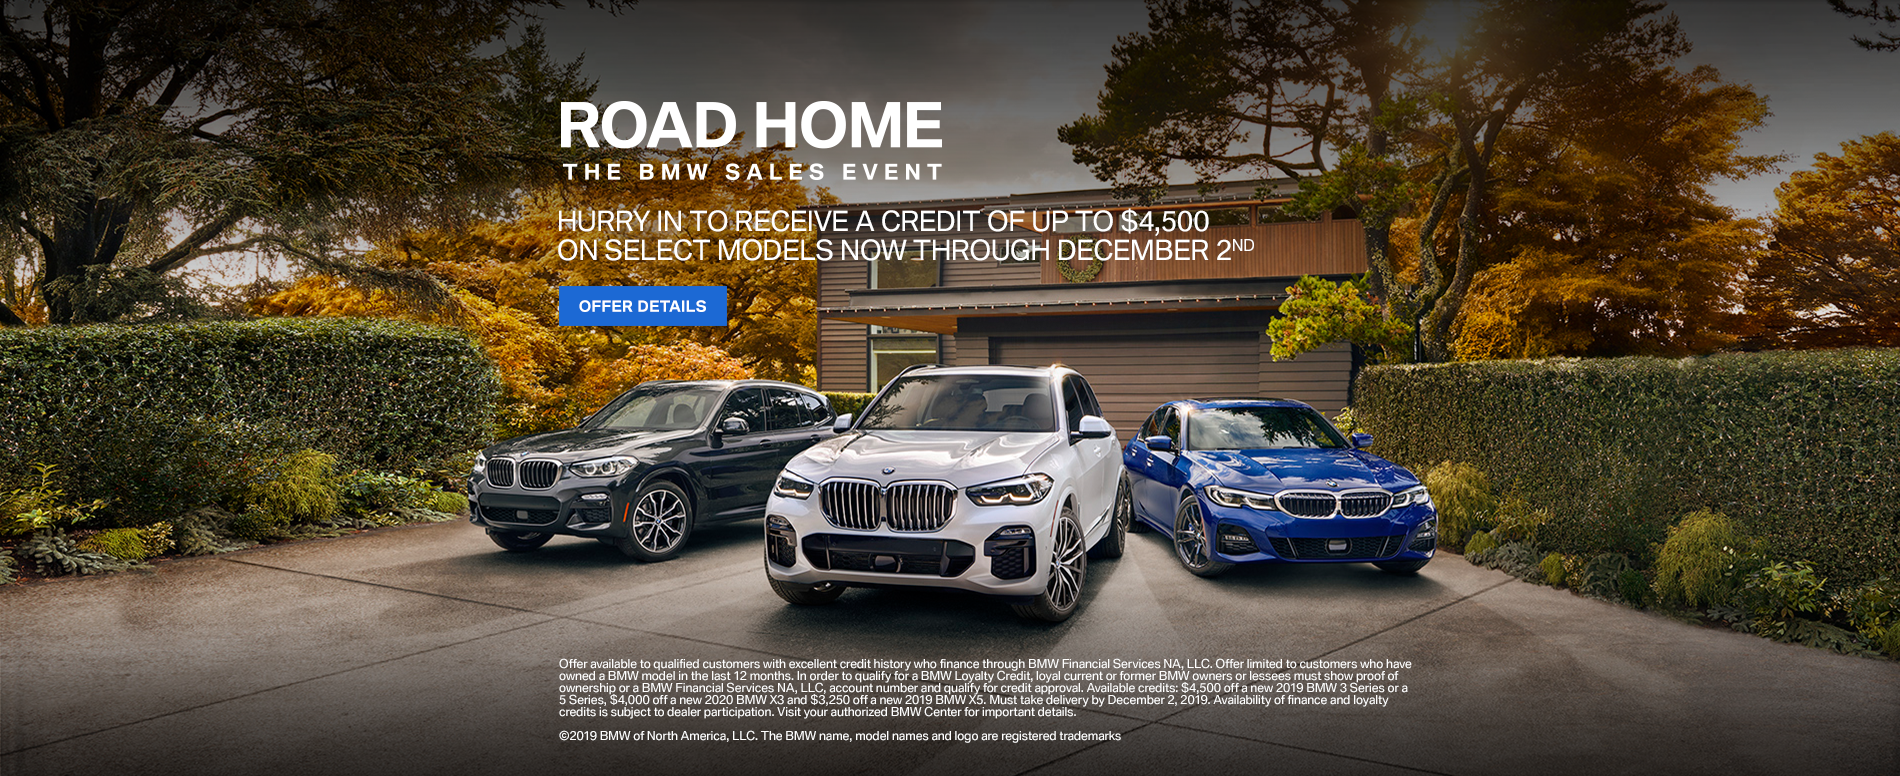 FMA1_PUSH_BMW_Road_Home_Sales_Event